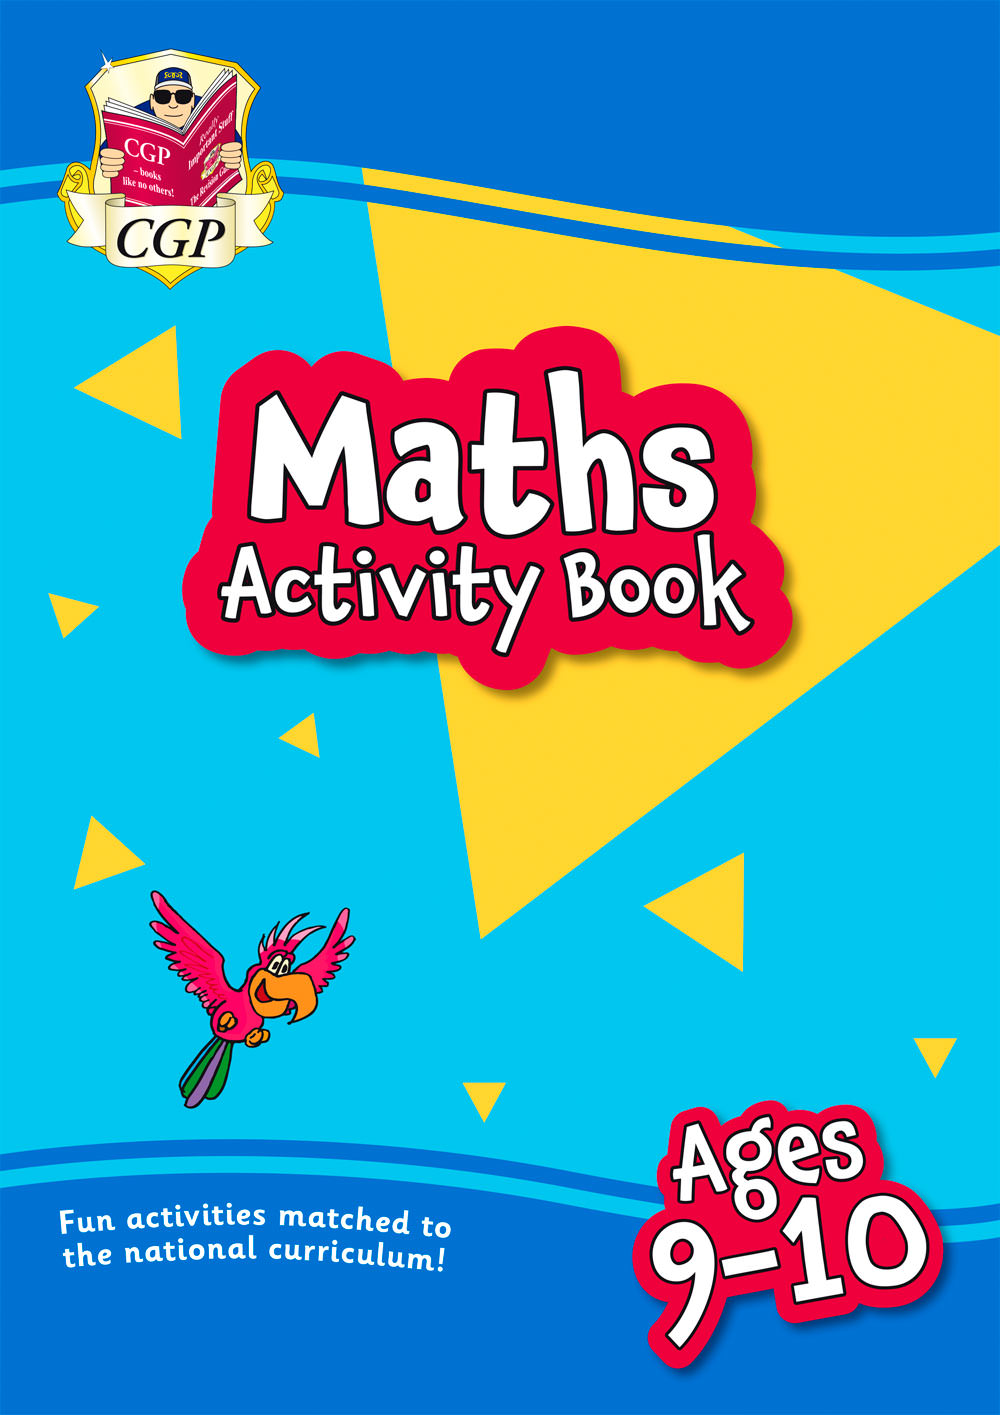 MPF5Q21 - New Maths Activity Book for Ages 9-10